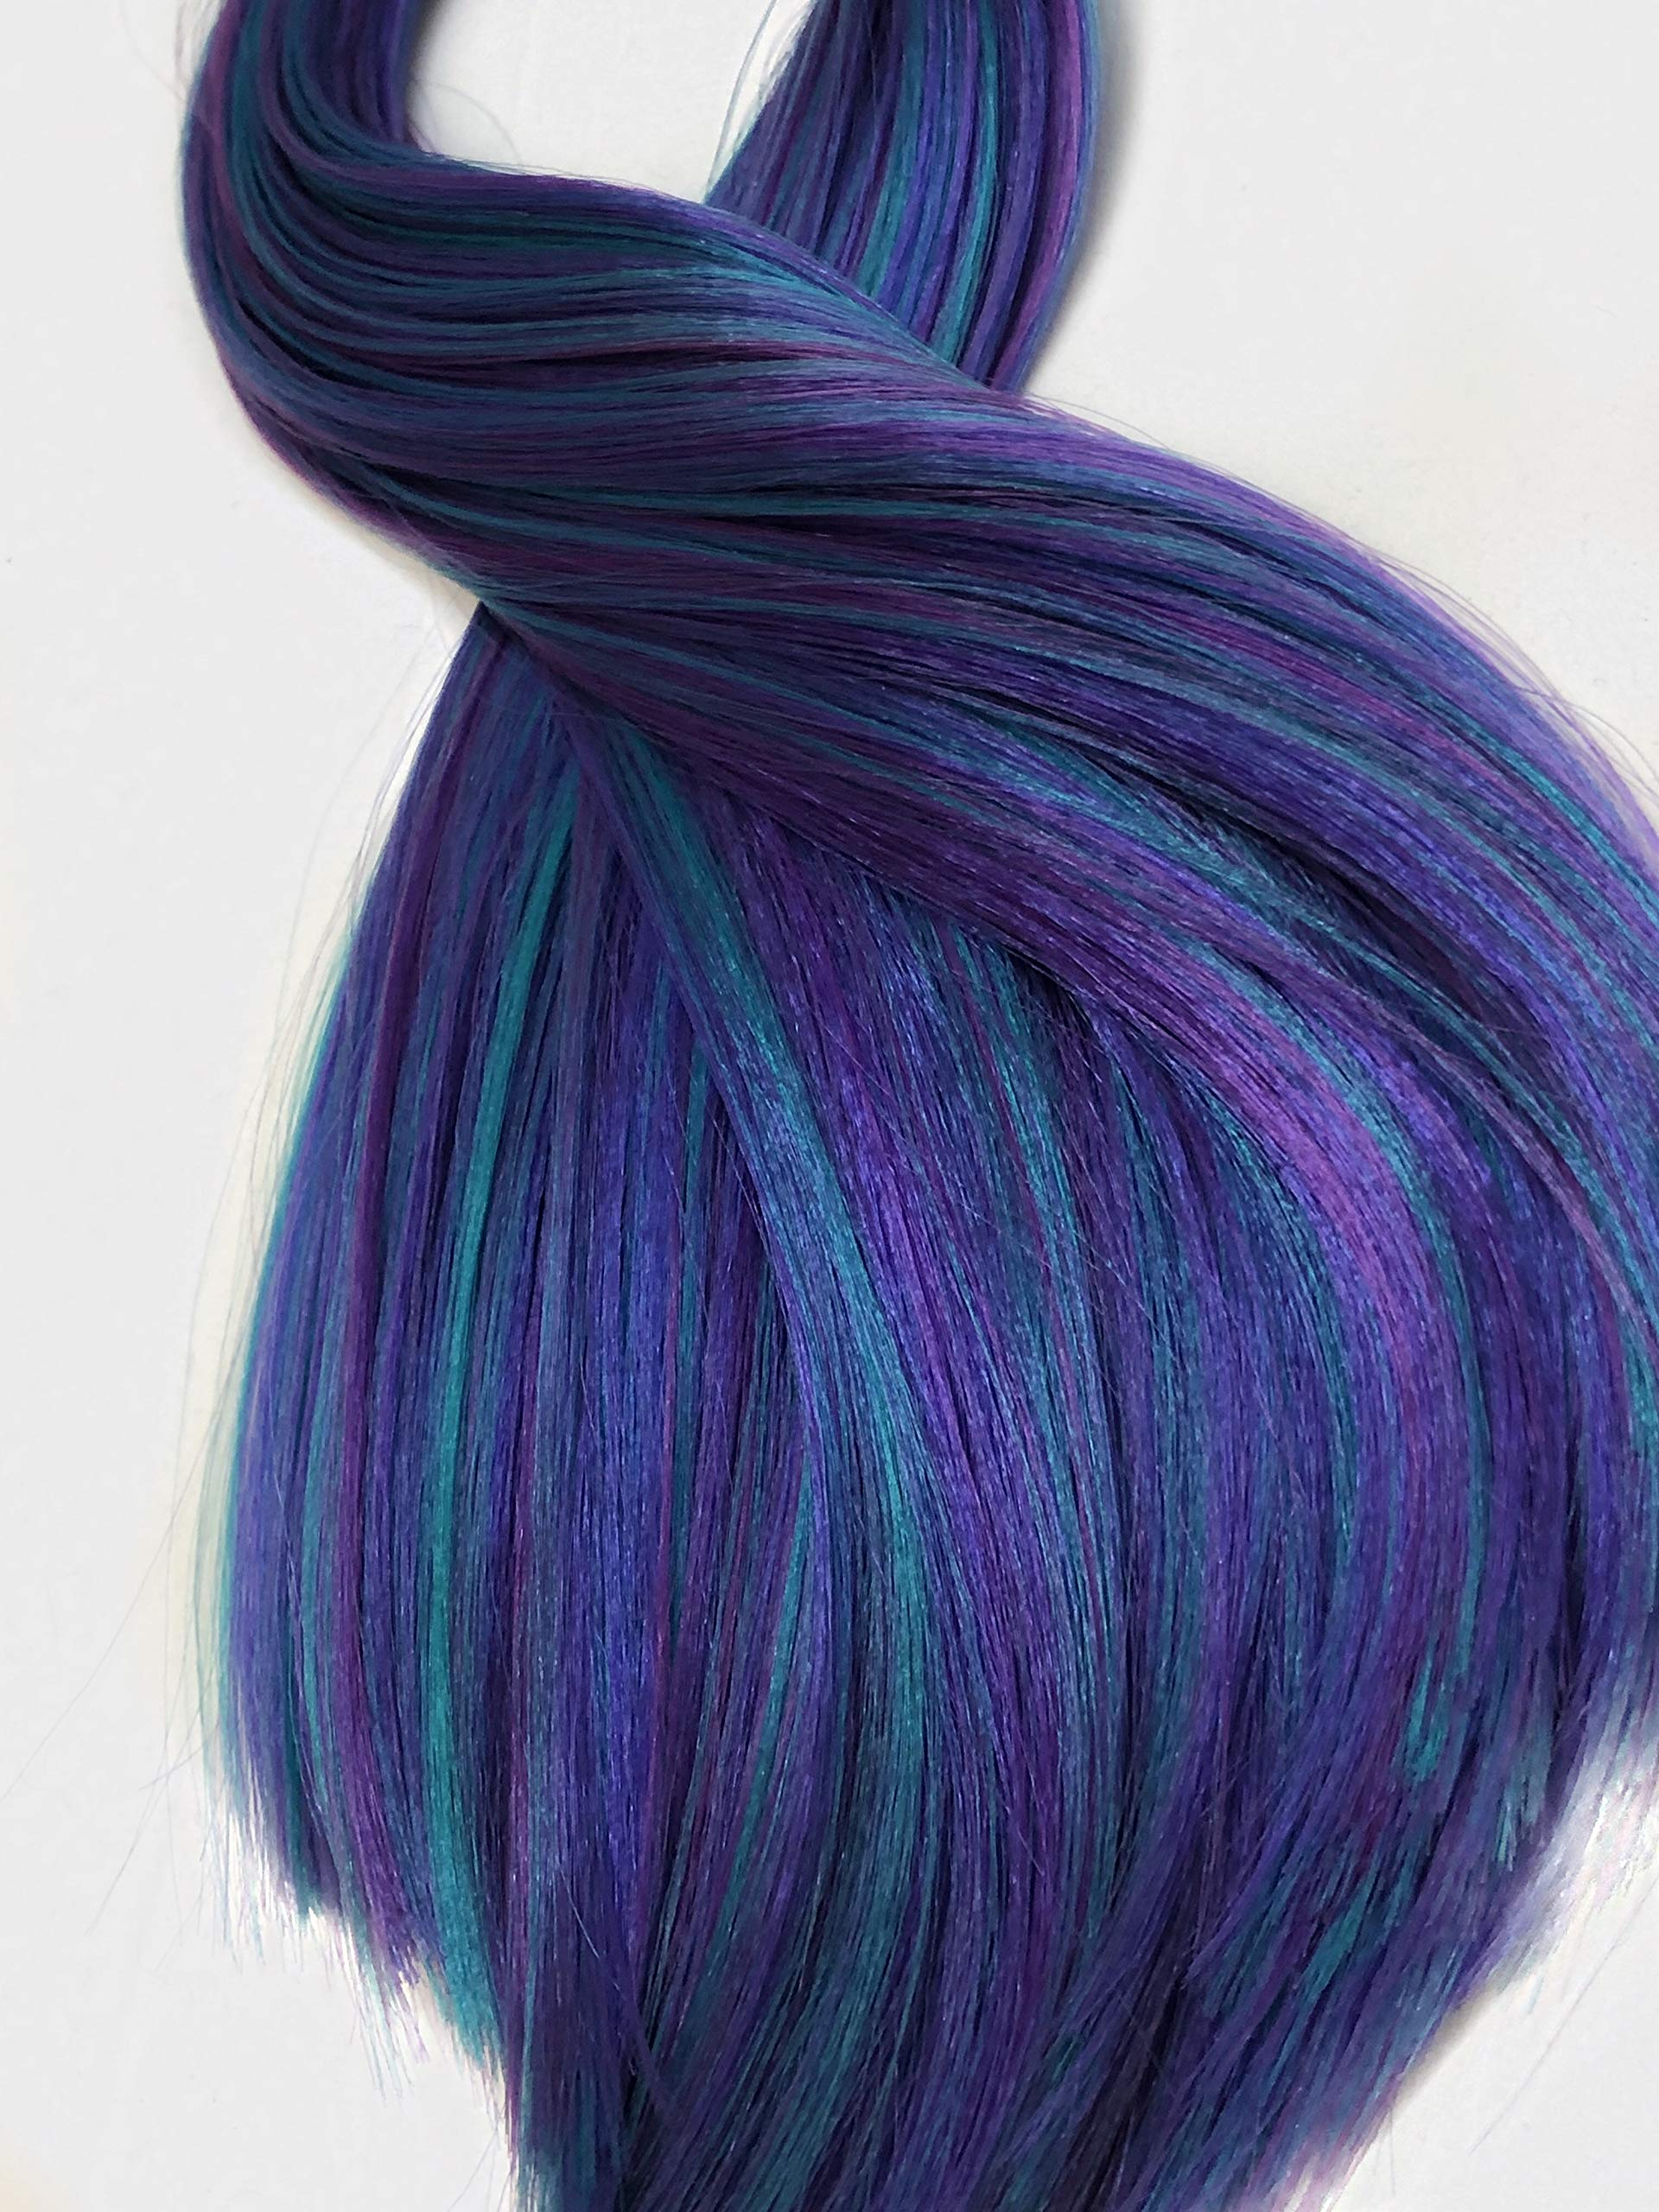 Deluxe Nylon Doll Hair Blends for Rerooting Dolls 18 Length Professional Doll Grade Quality Rehair Doll Wigs Oregon Berry DIY 20 Grams